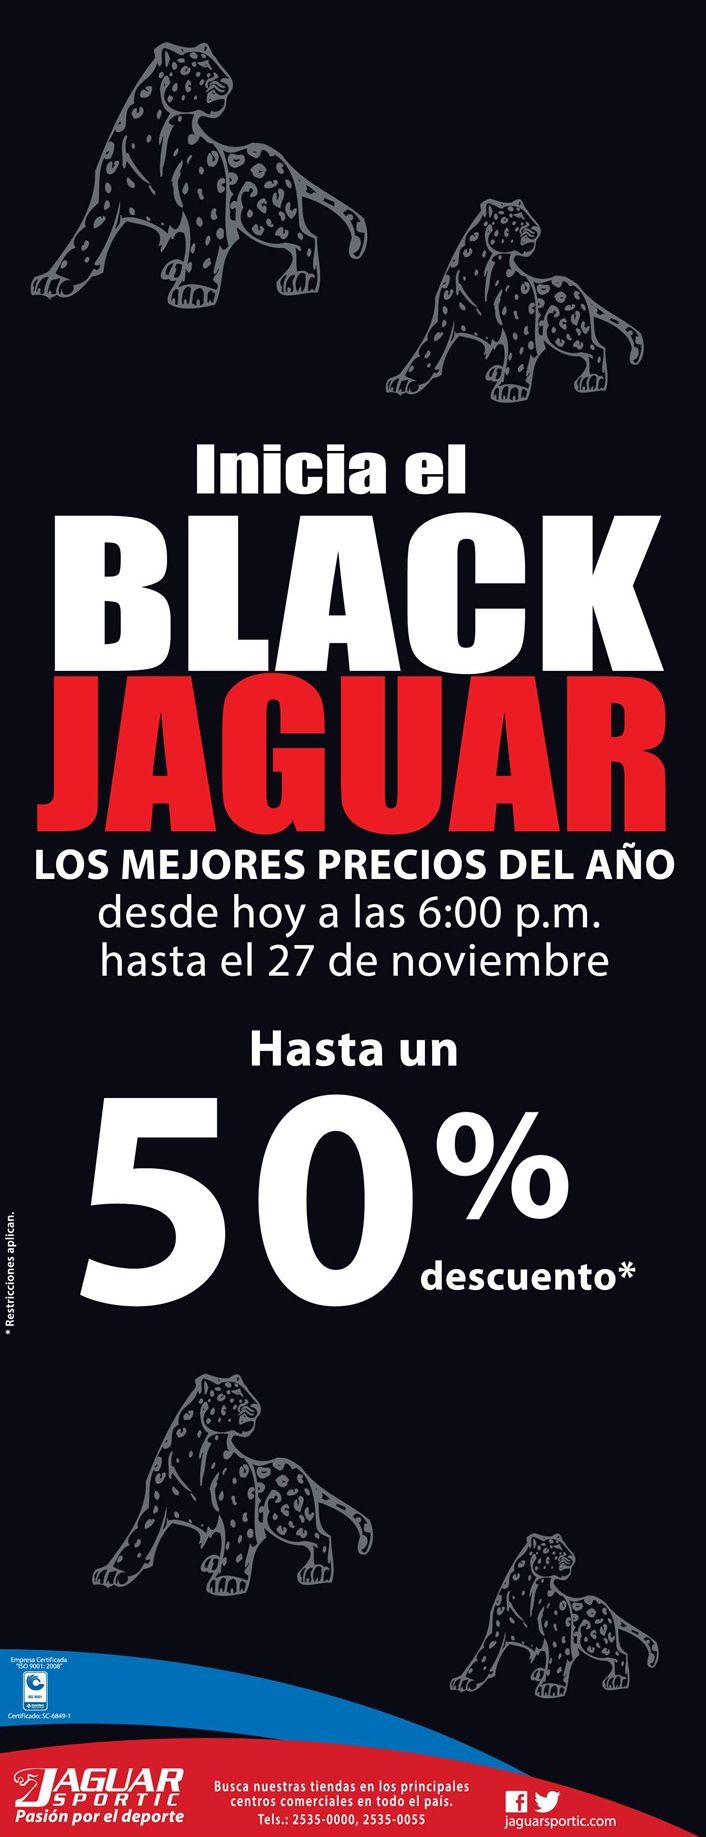 black-jaguar-hasta-50-off-en-zapatos-deportivos